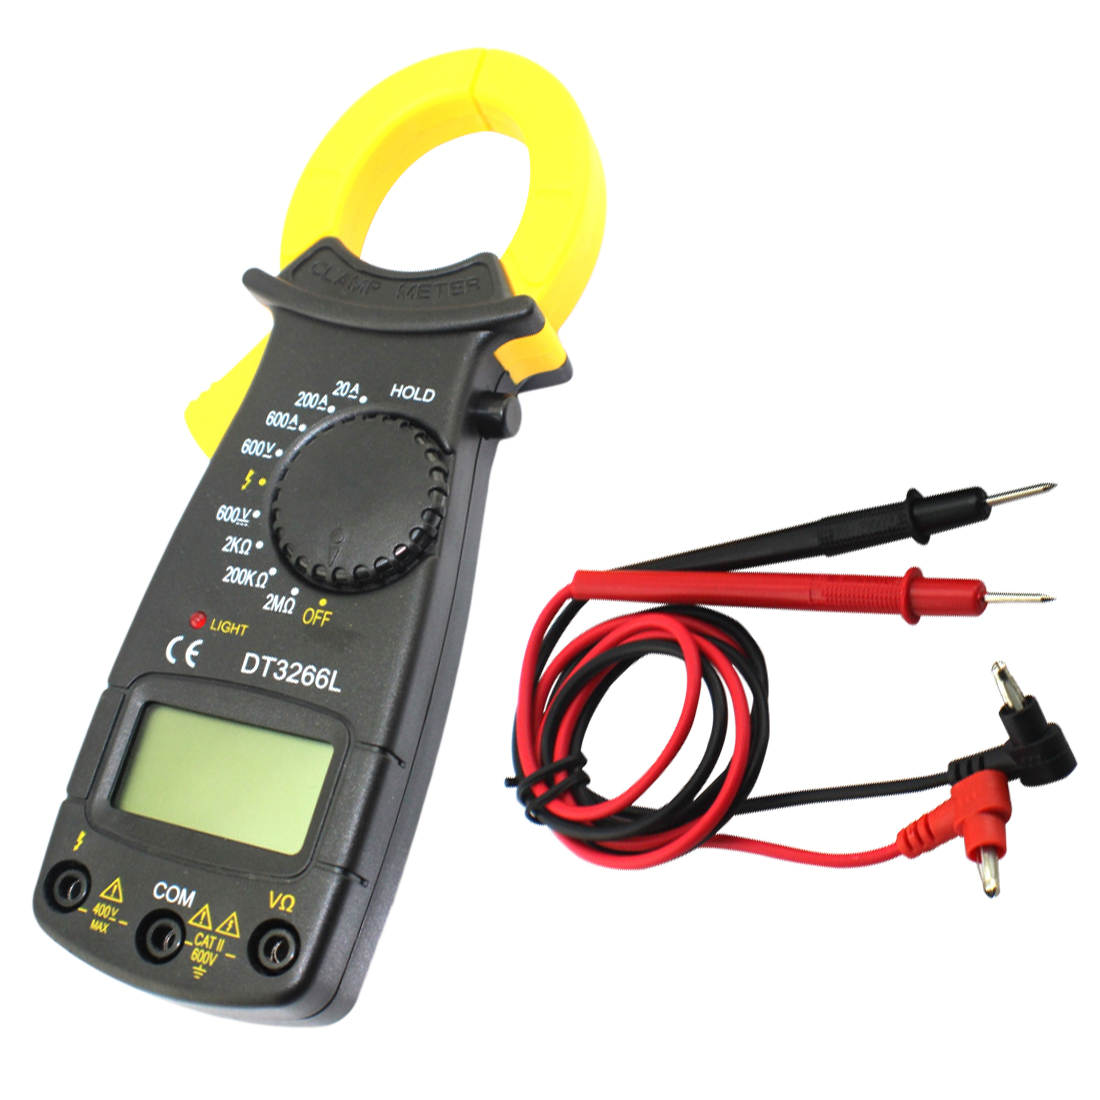 AC DC Digital DT-3266L Clamp Meter Multimeter Pincers Resistance Voltmeter Ammeter Ohm Current Voltage Tester